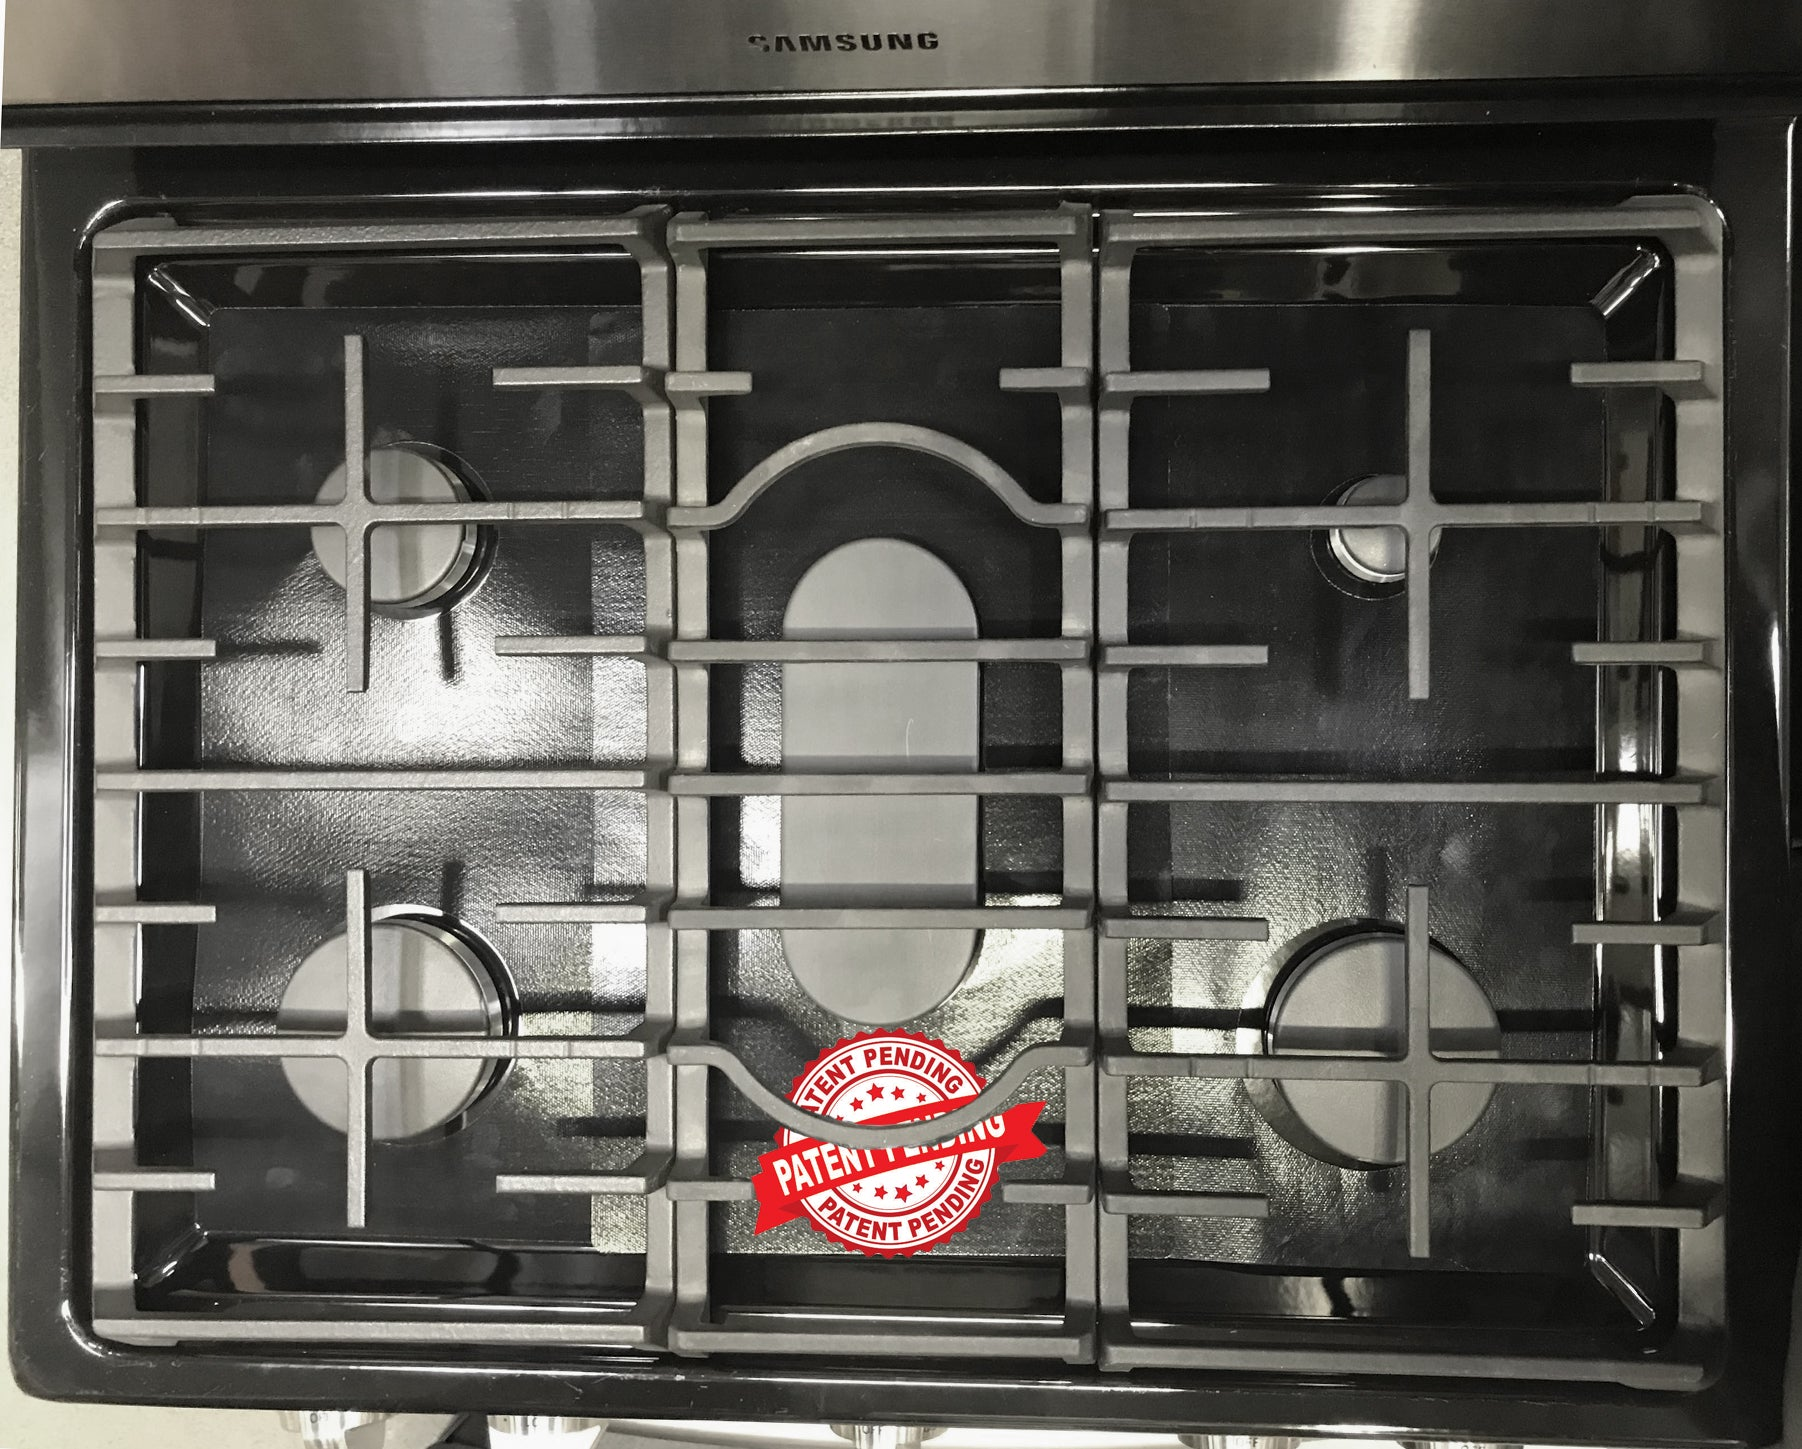 Stove Top Protector for LG Gas Ranges Customized LG Stove Protector Liners Easy Cleaning Stove Liners for LG Model LRG3061BD//01